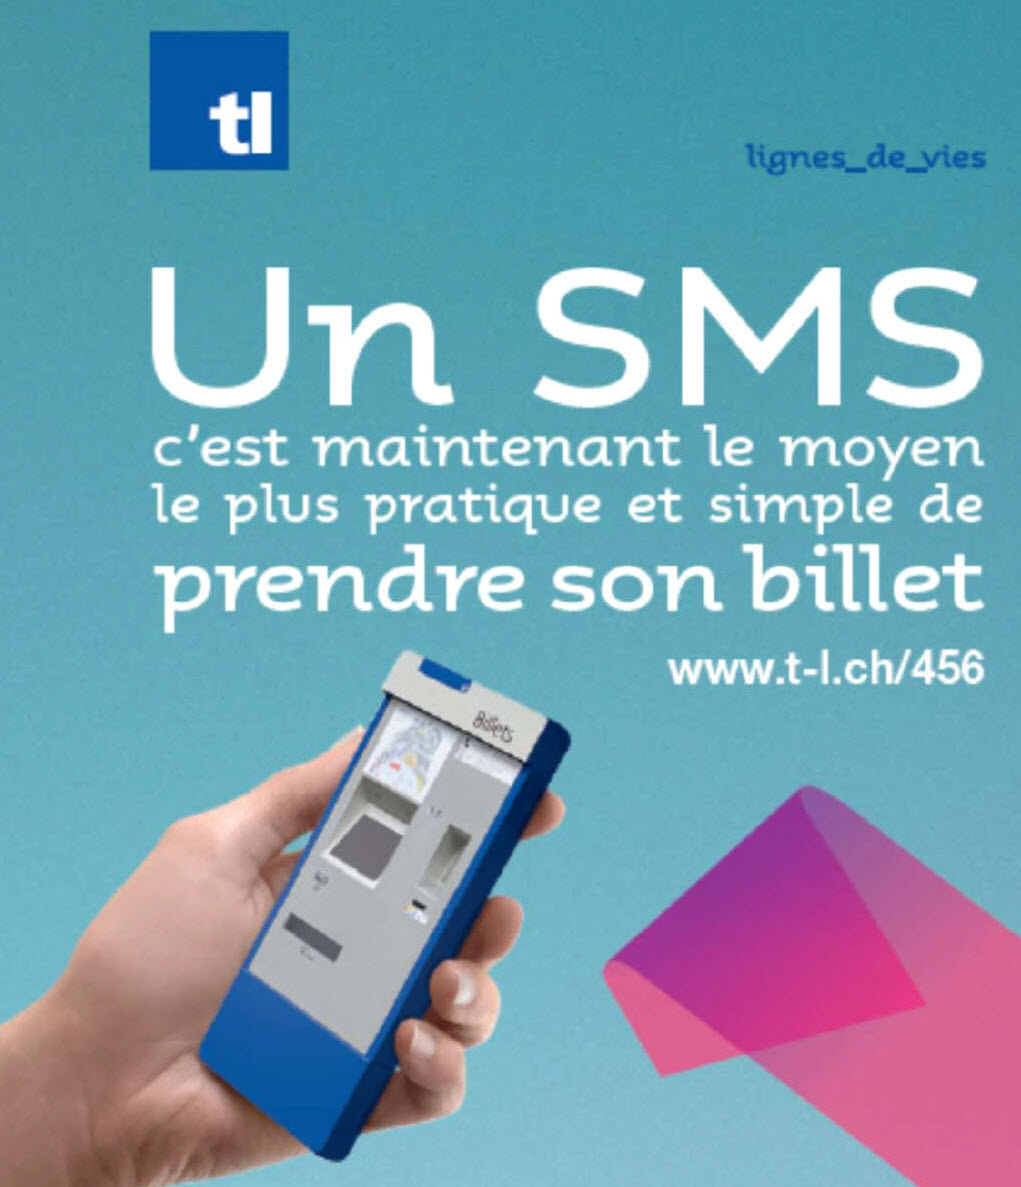 TL sms flyer